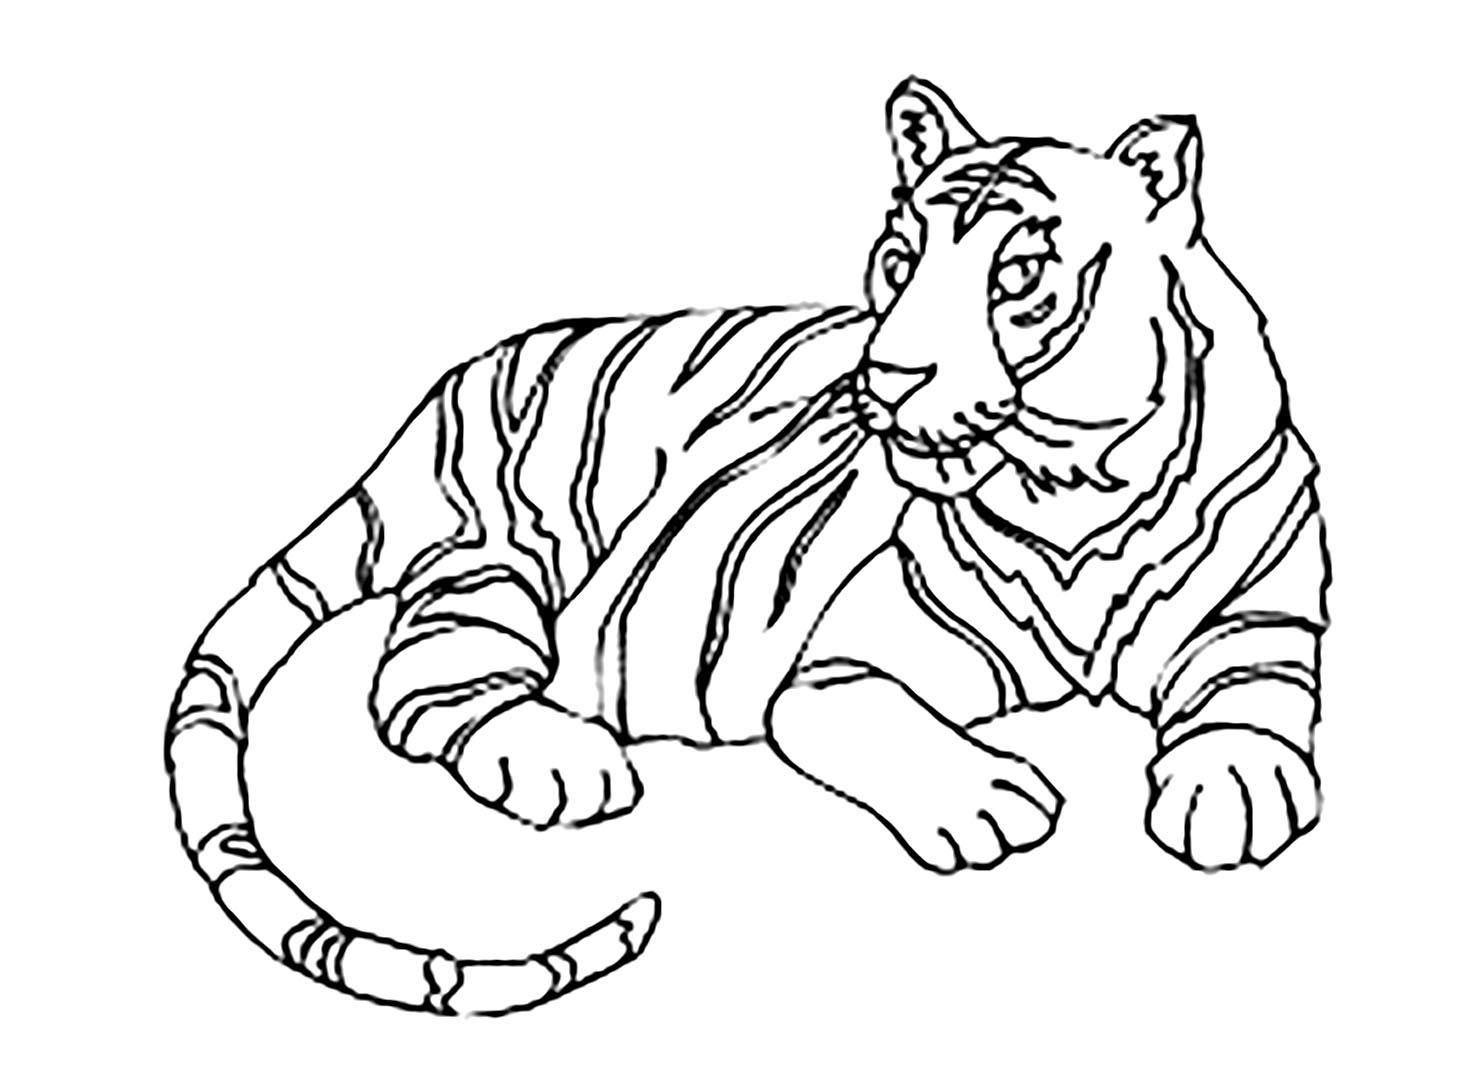 Awesome Coloring Page Tiger That You Must Know You Re In Good